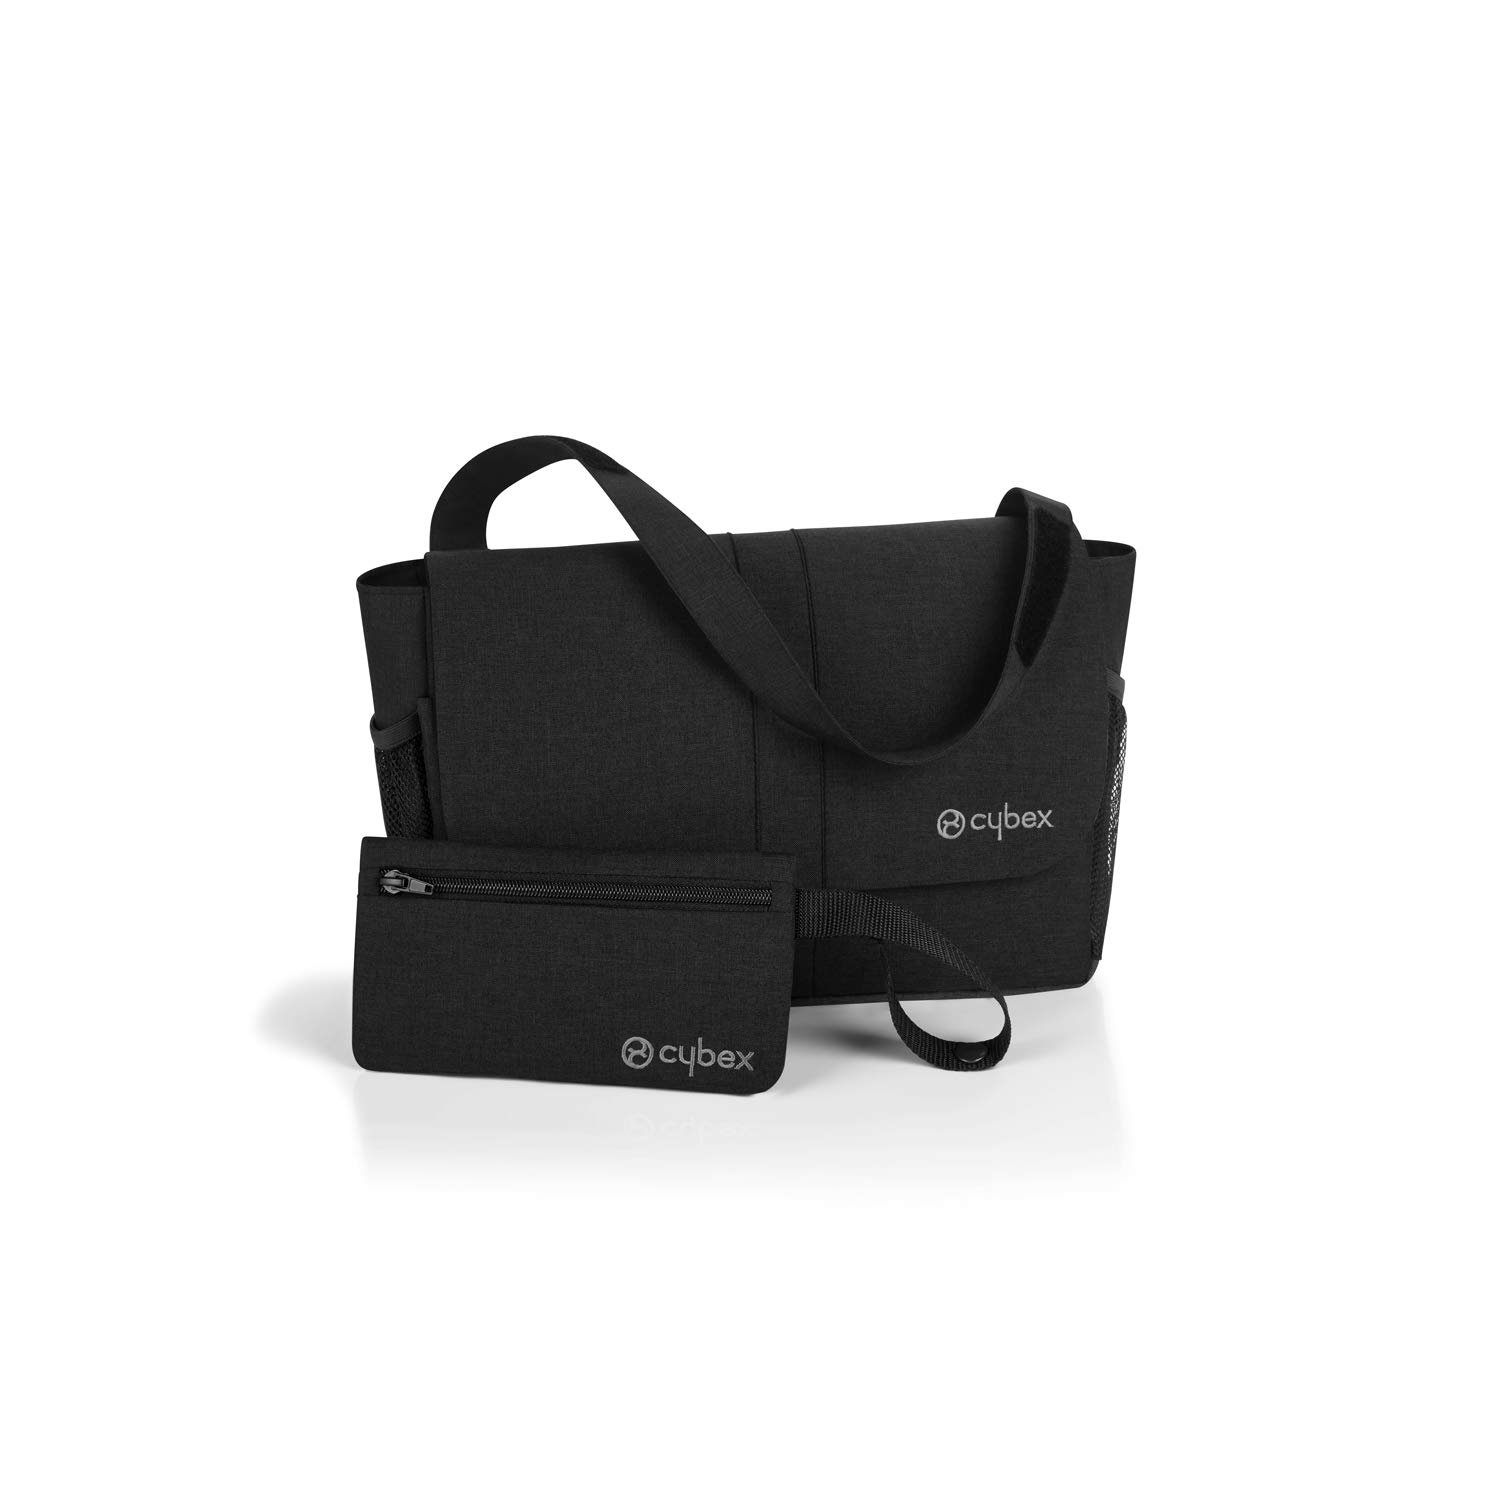 Spacious Bag with Strap CYBEX Gold Organizer Storage Bag for Small Items Black Incl